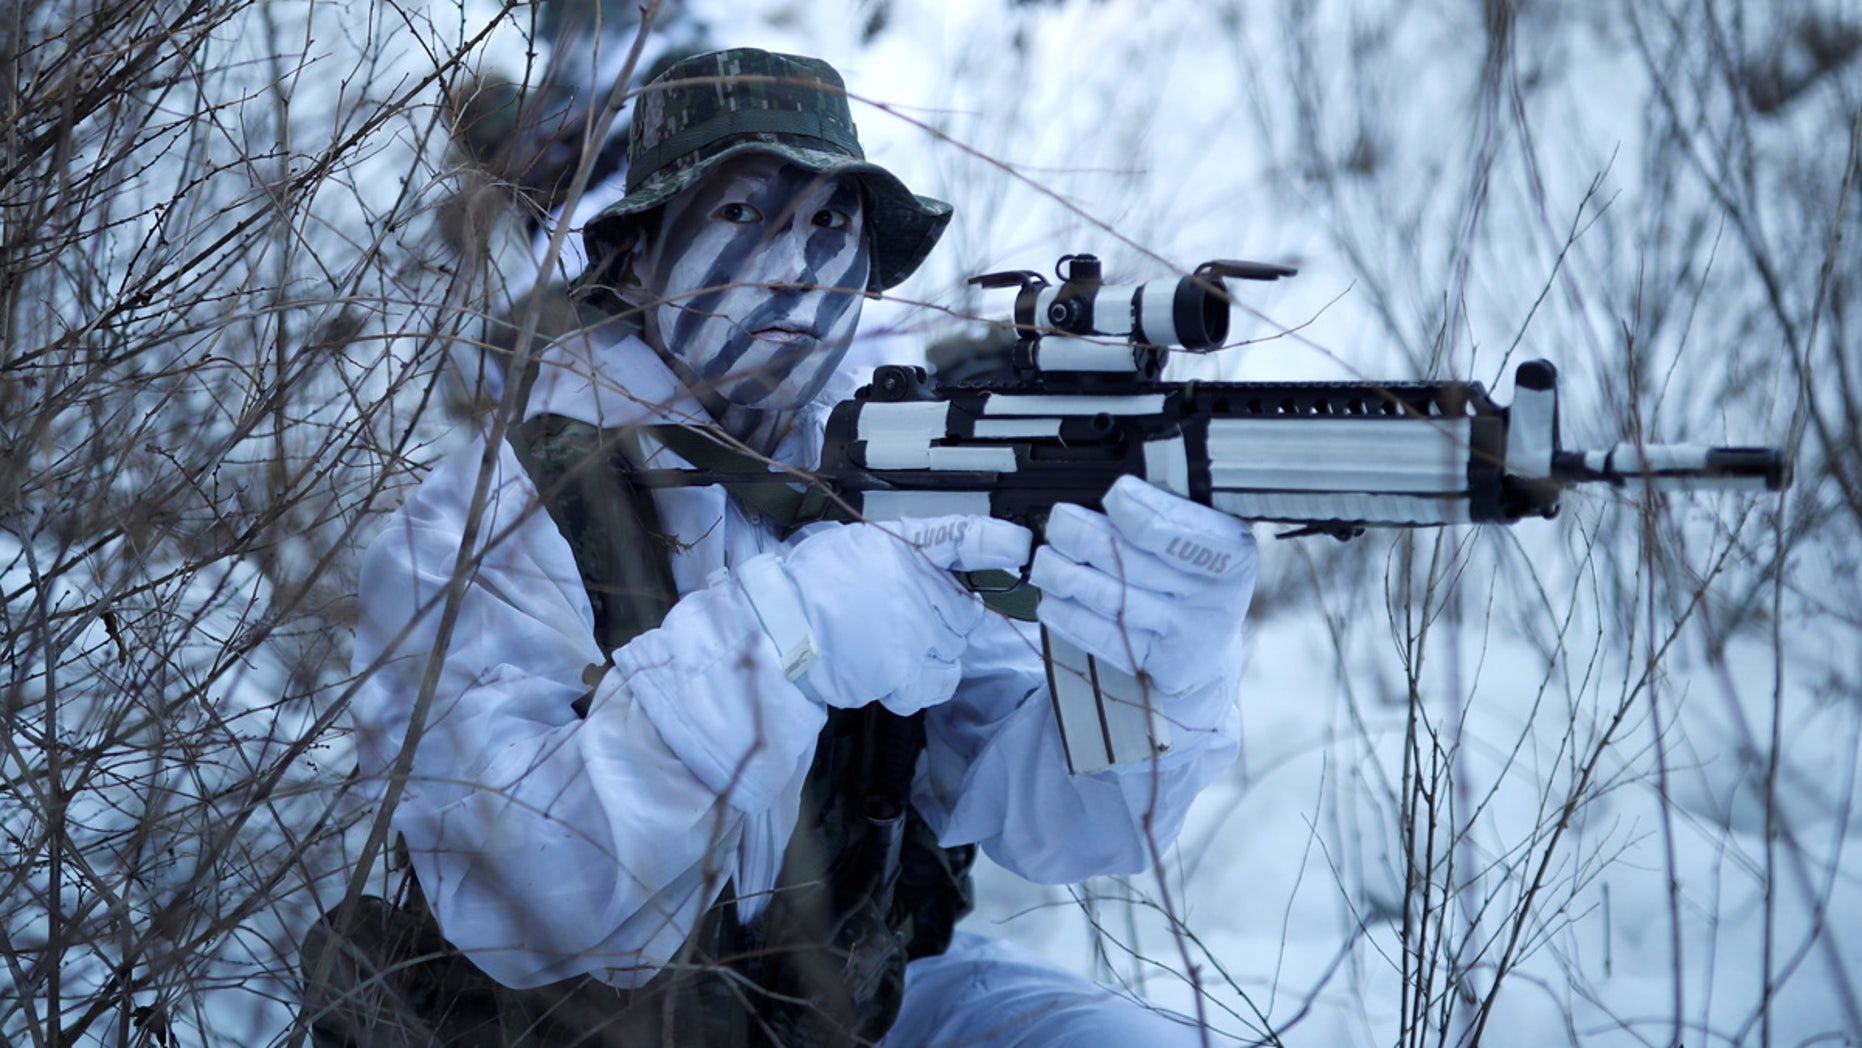 South Korean and U.S. Marines take part in a winter military drill in Pyeongchang, South Korea on Dec. 19.